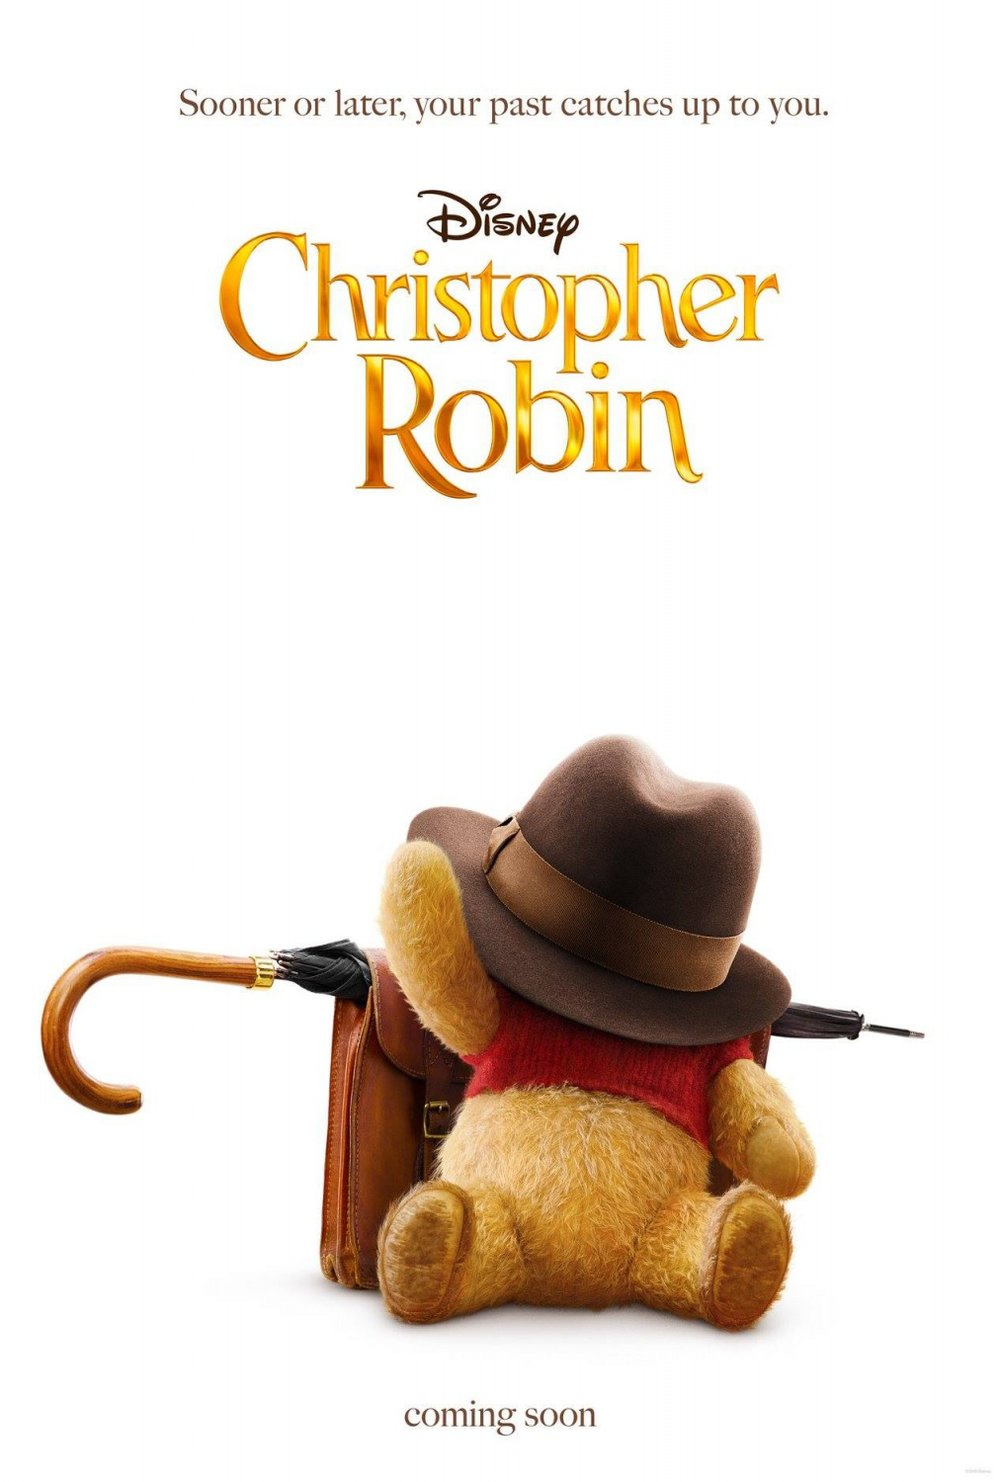 trailer-for-disneys-winnie-the-pooh-inspired-film-christopher-robin-with-ewan-mcgregor1